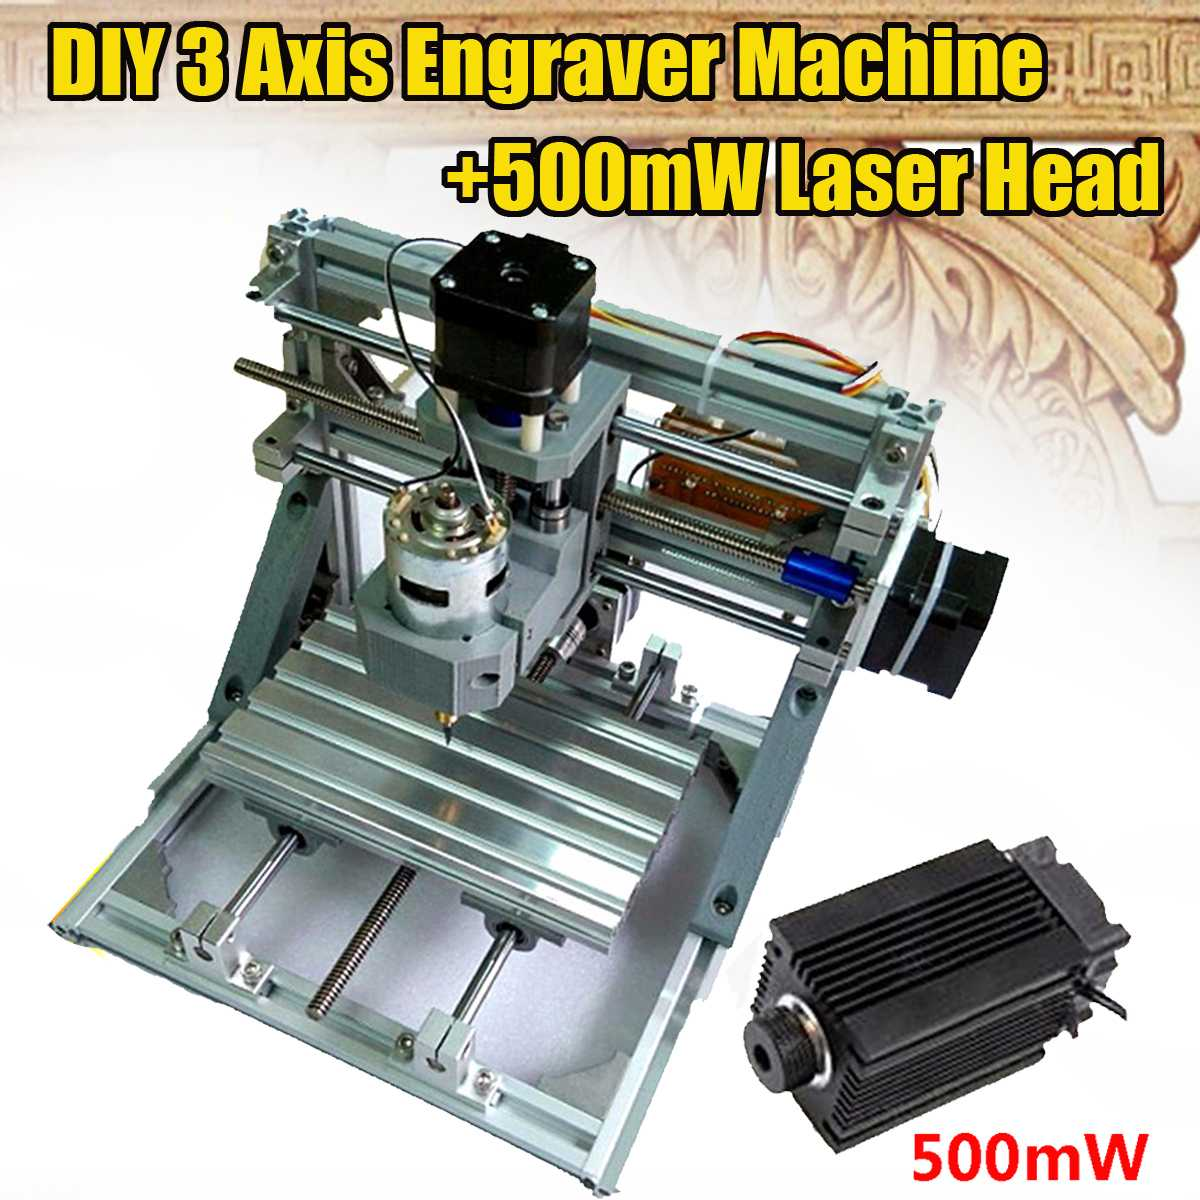 3 Axis Engraver Milling Wood Carving Diy Mini Cnc Engraving Machine Laser Engraving Wood Router With 500mw Laser Head3 Axis Engraver Milling Wood Carving Diy Mini Cnc Engraving Machine Laser Engraving Wood Router With 500mw Laser Head